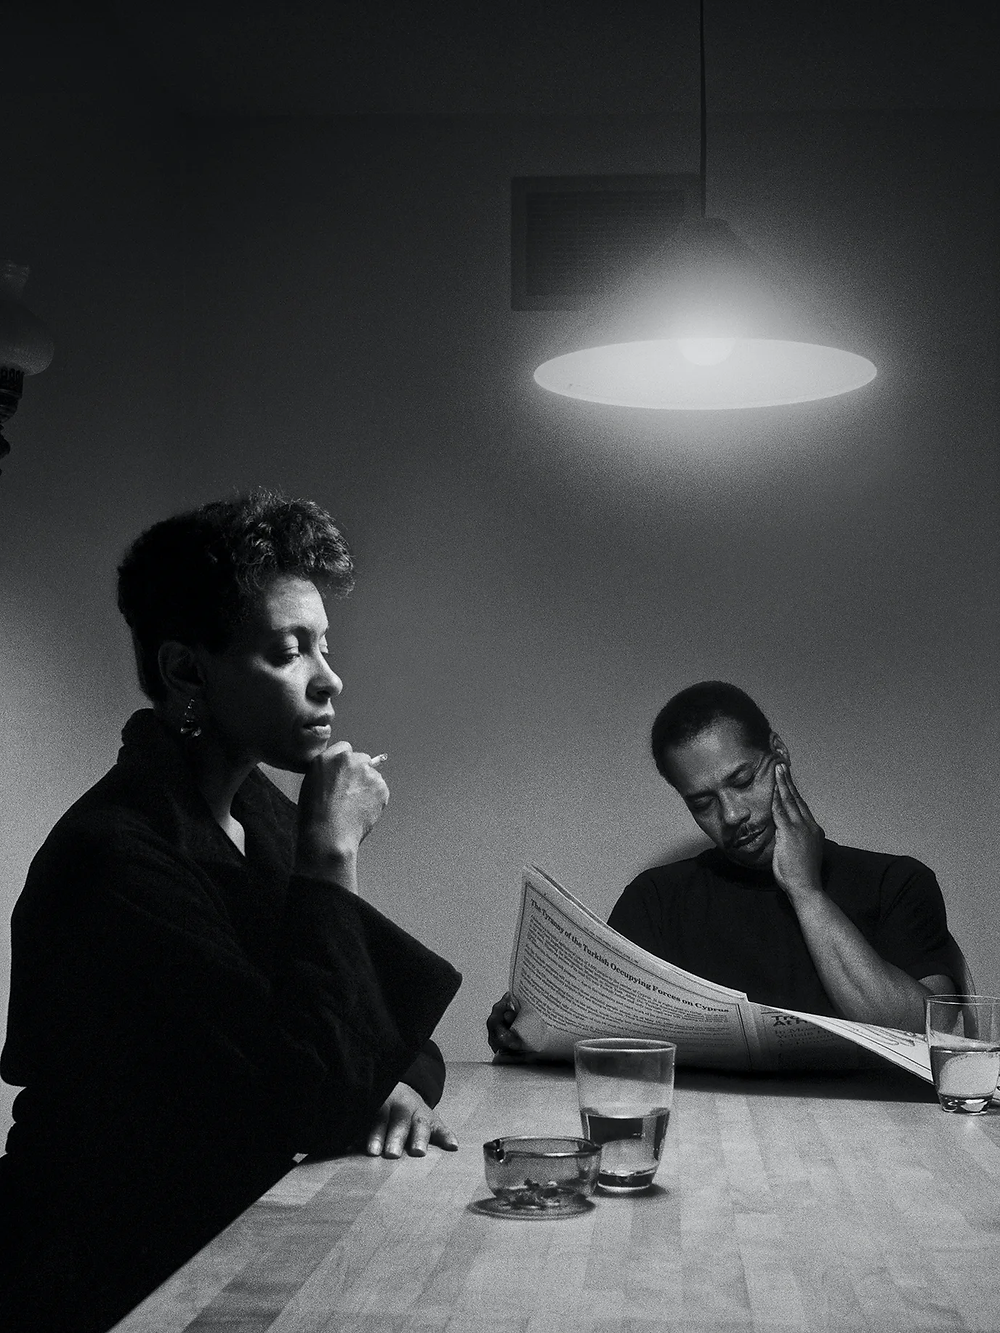 A woman sits, straight backed, at a table with a cigarette under her chin. The man at the end of the table is reading a newspaper while rubbing his face. A piece from Carrie Mae Weems' 1990 series The Kitchen Table Series.